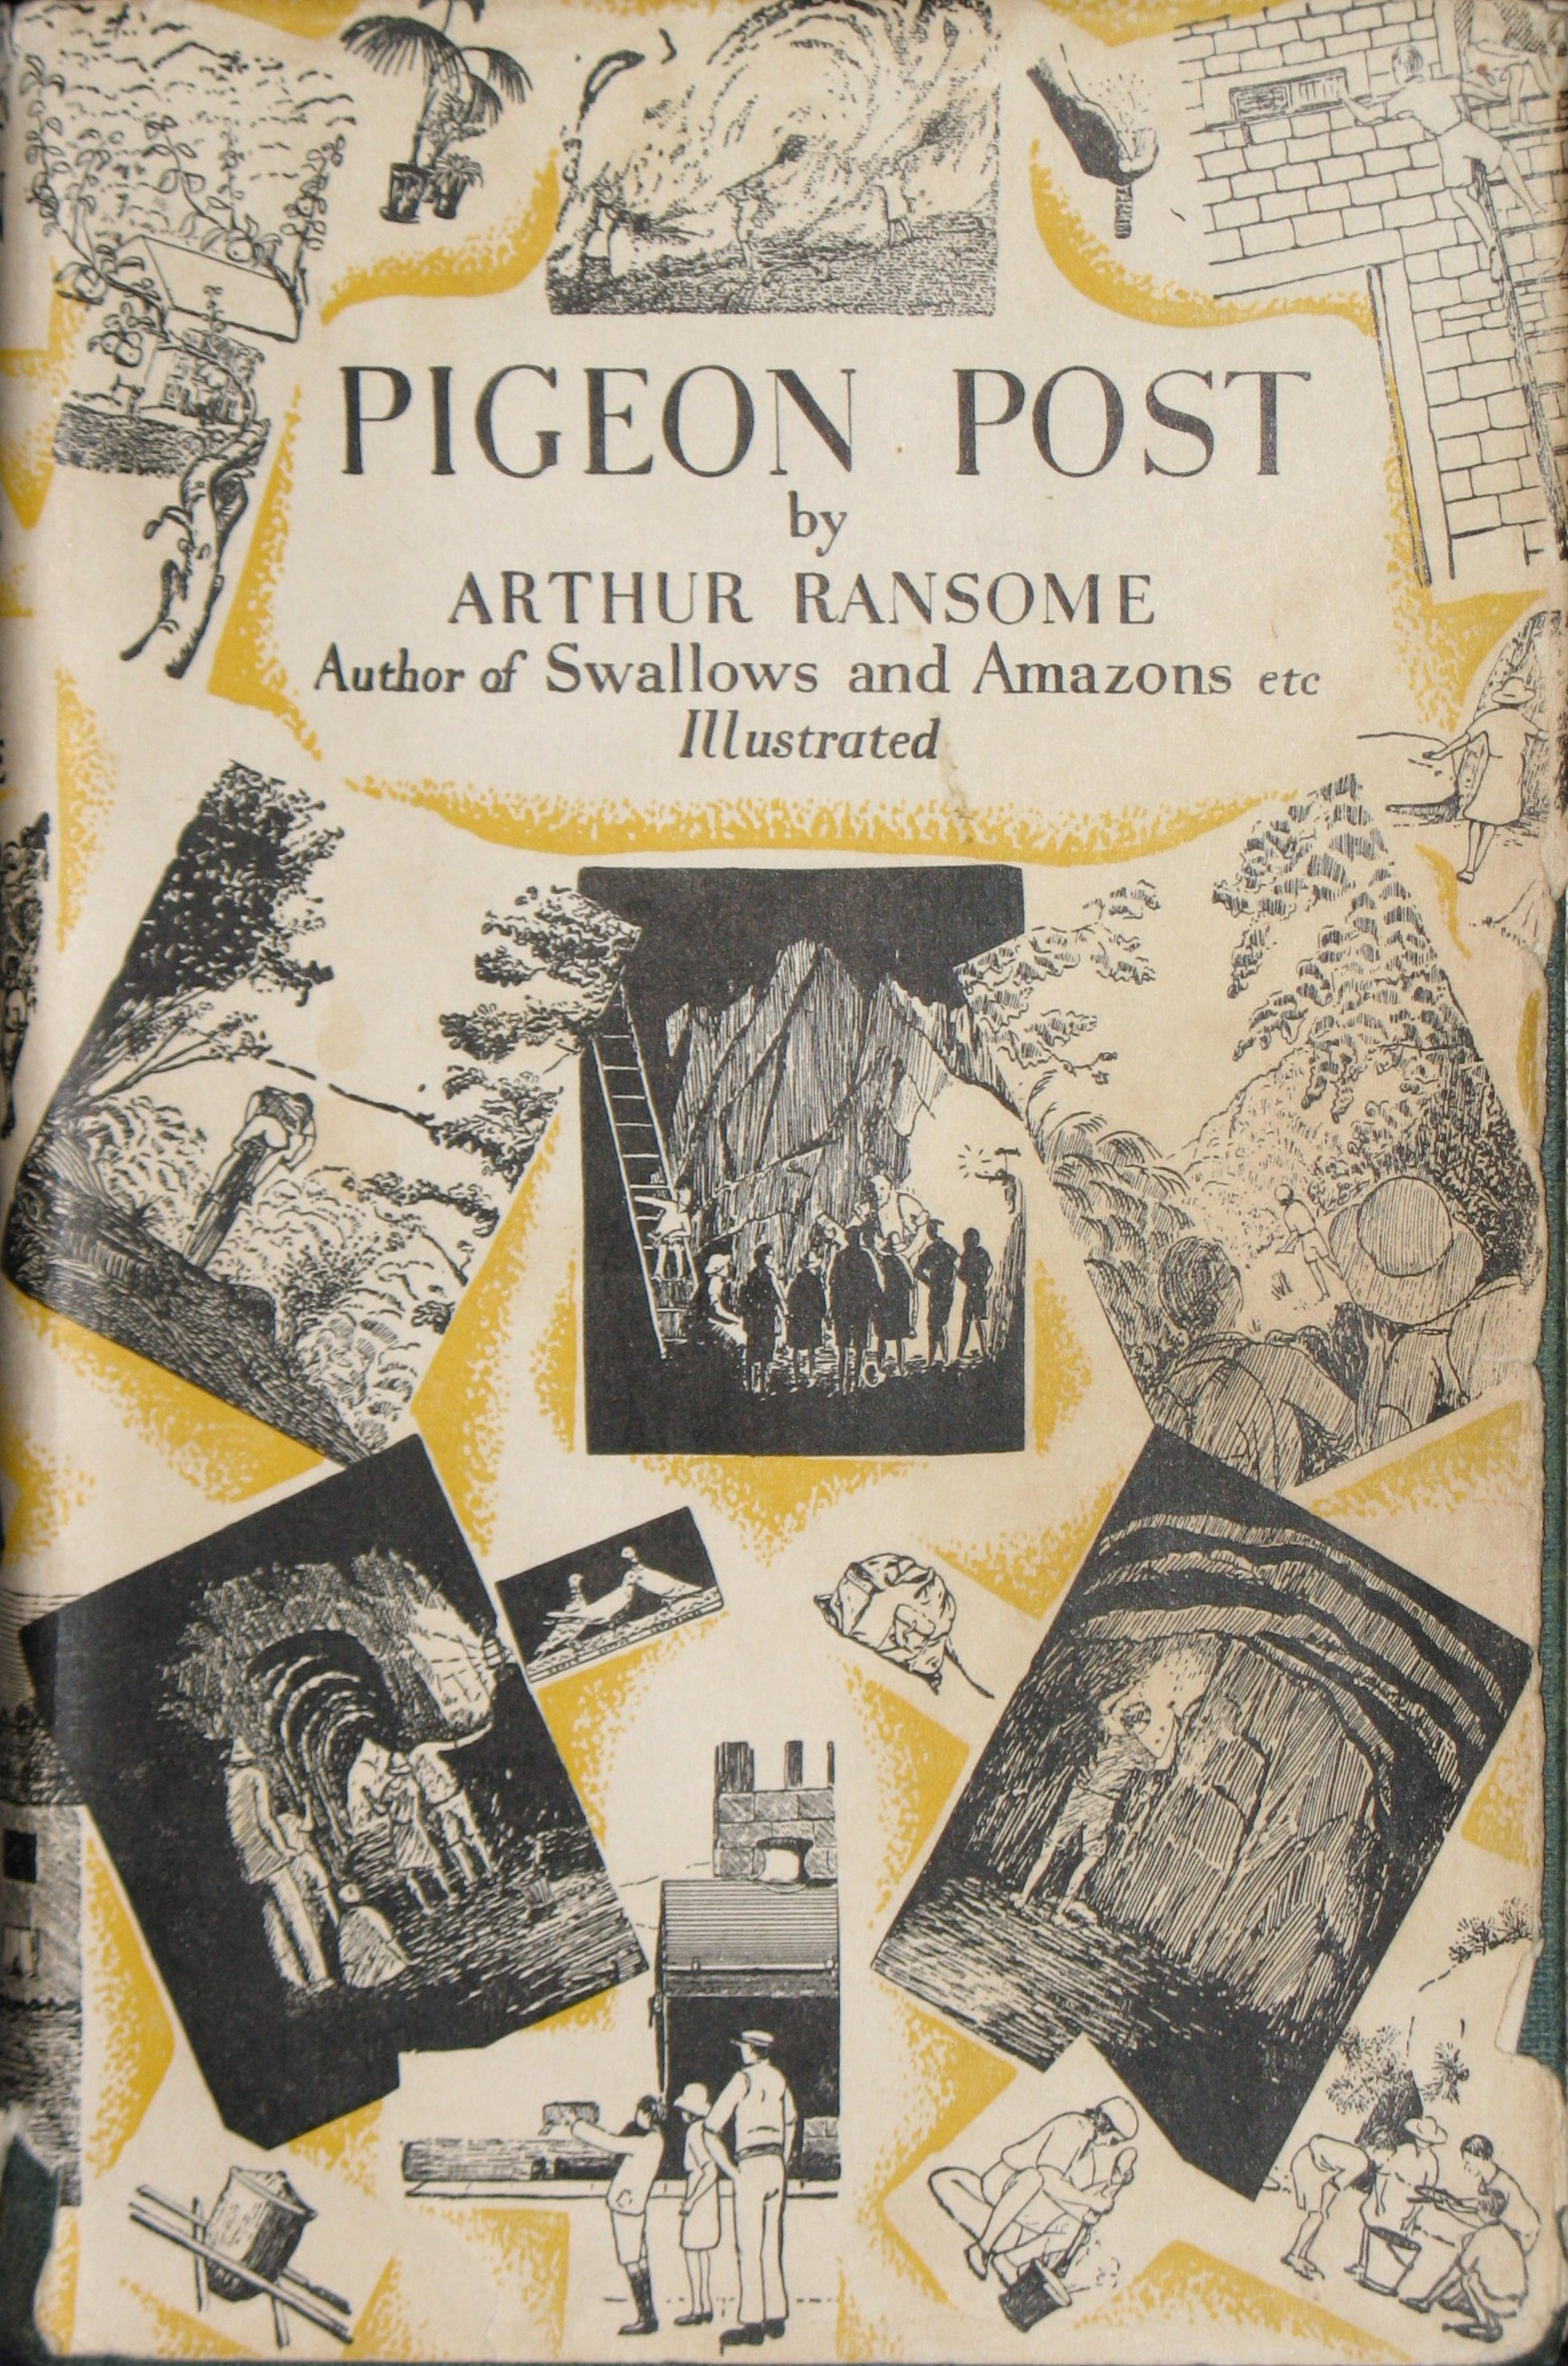 File:Pigeon Post cover.jpg - Wikipedia, the free encyclopedia